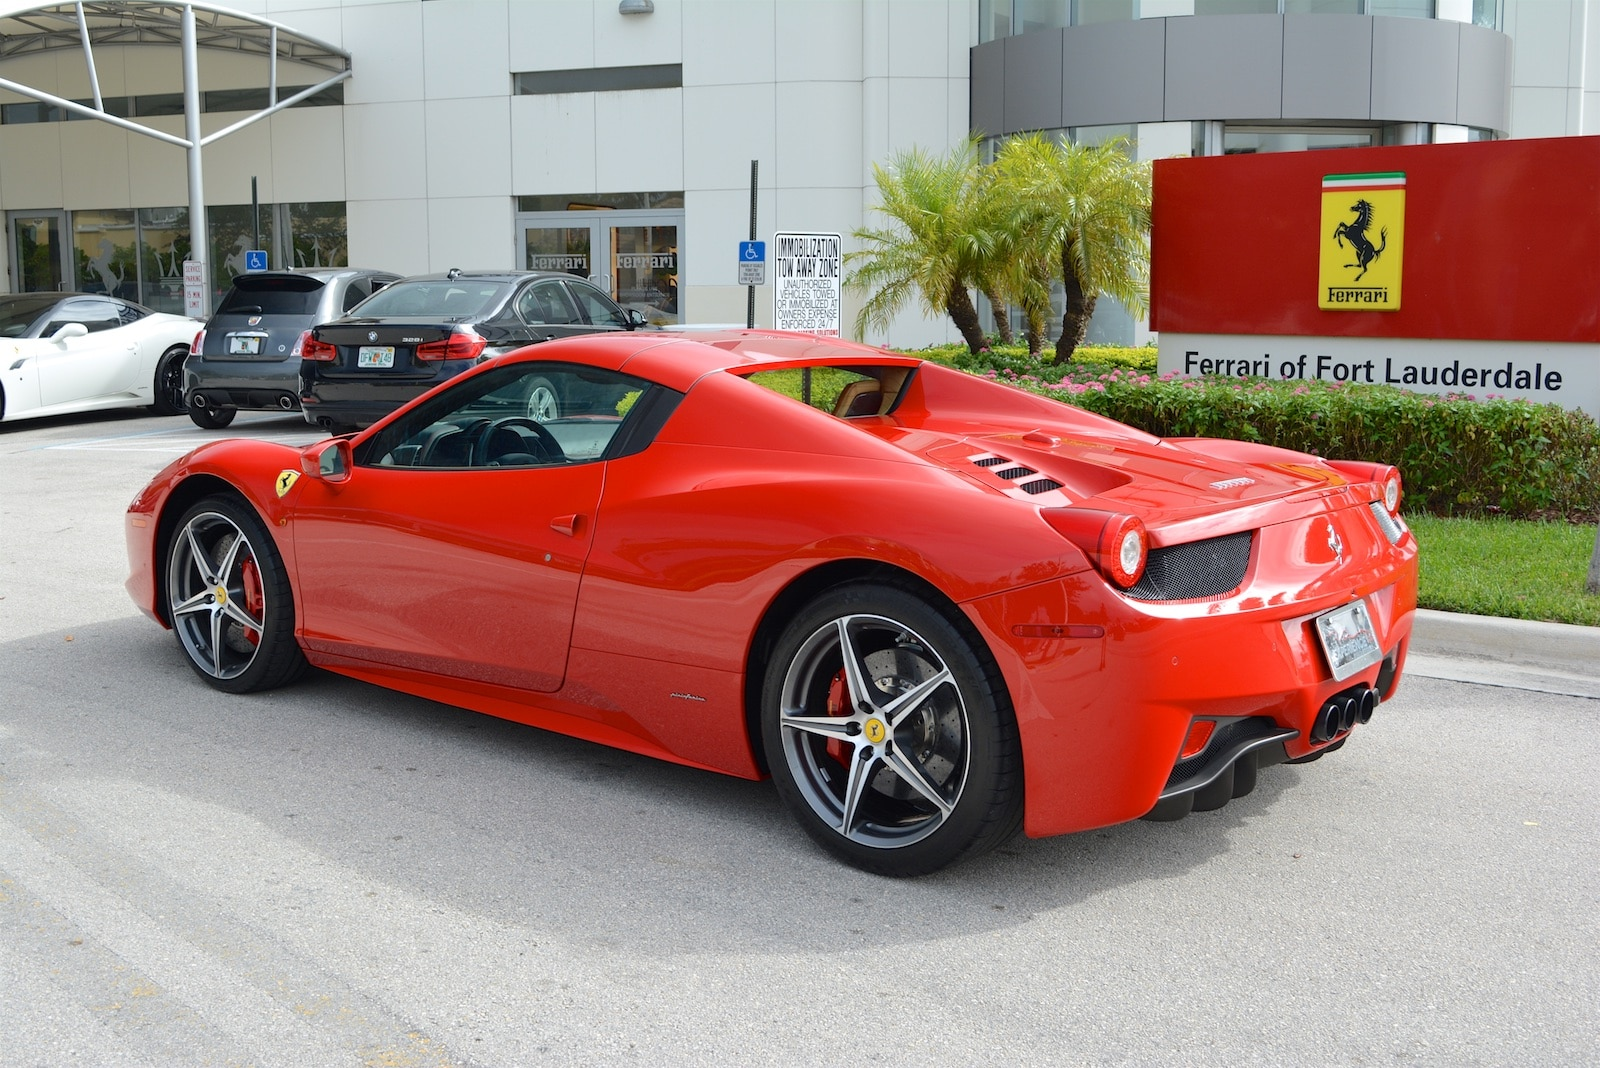 2013 ferrari 458 spider convertible for sale in fort lauderdale fl at. Cars Review. Best American Auto & Cars Review